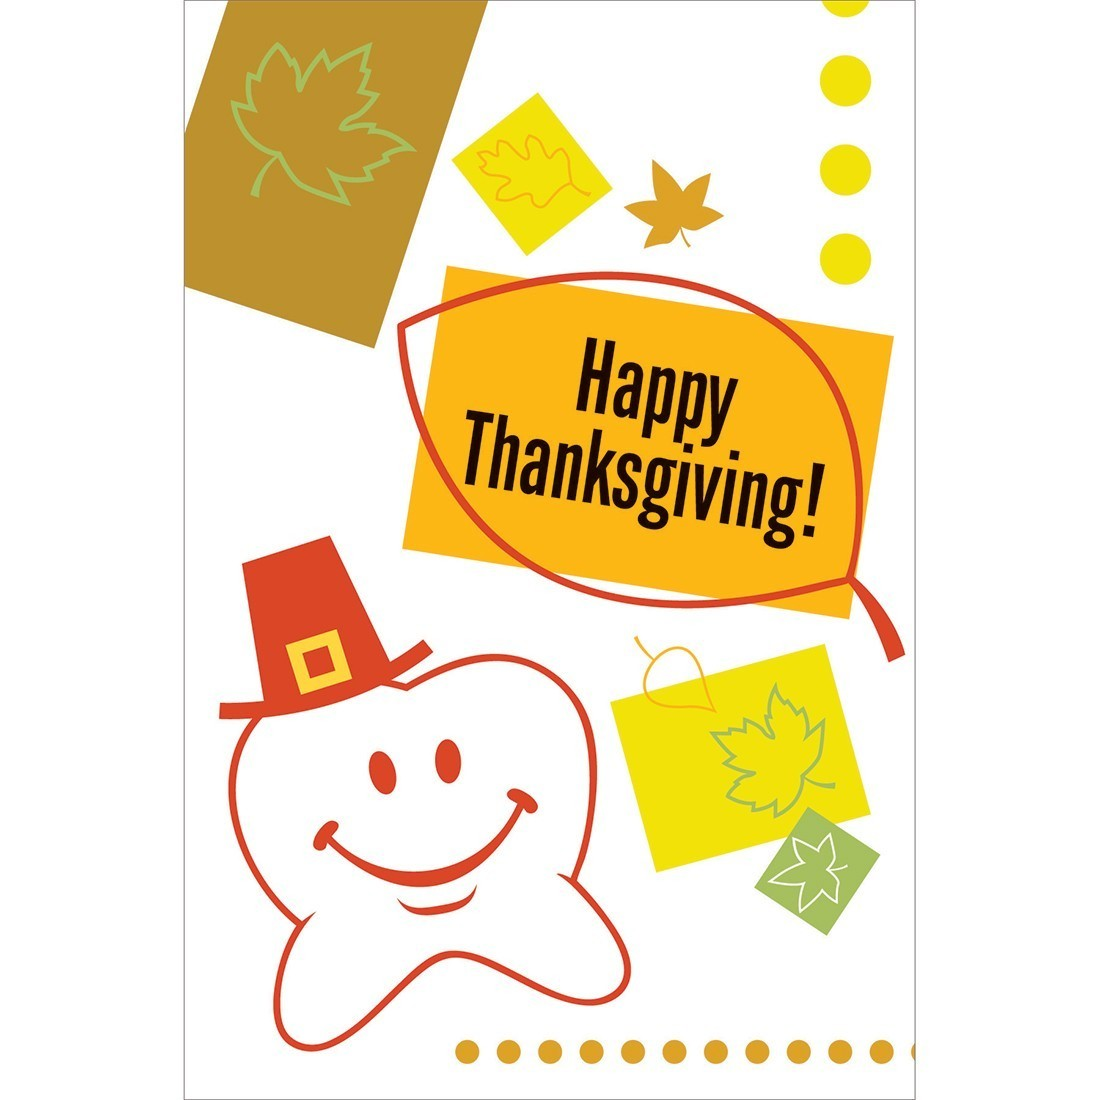 Happy Tooth Thanksgiving Greeting Cards [image]